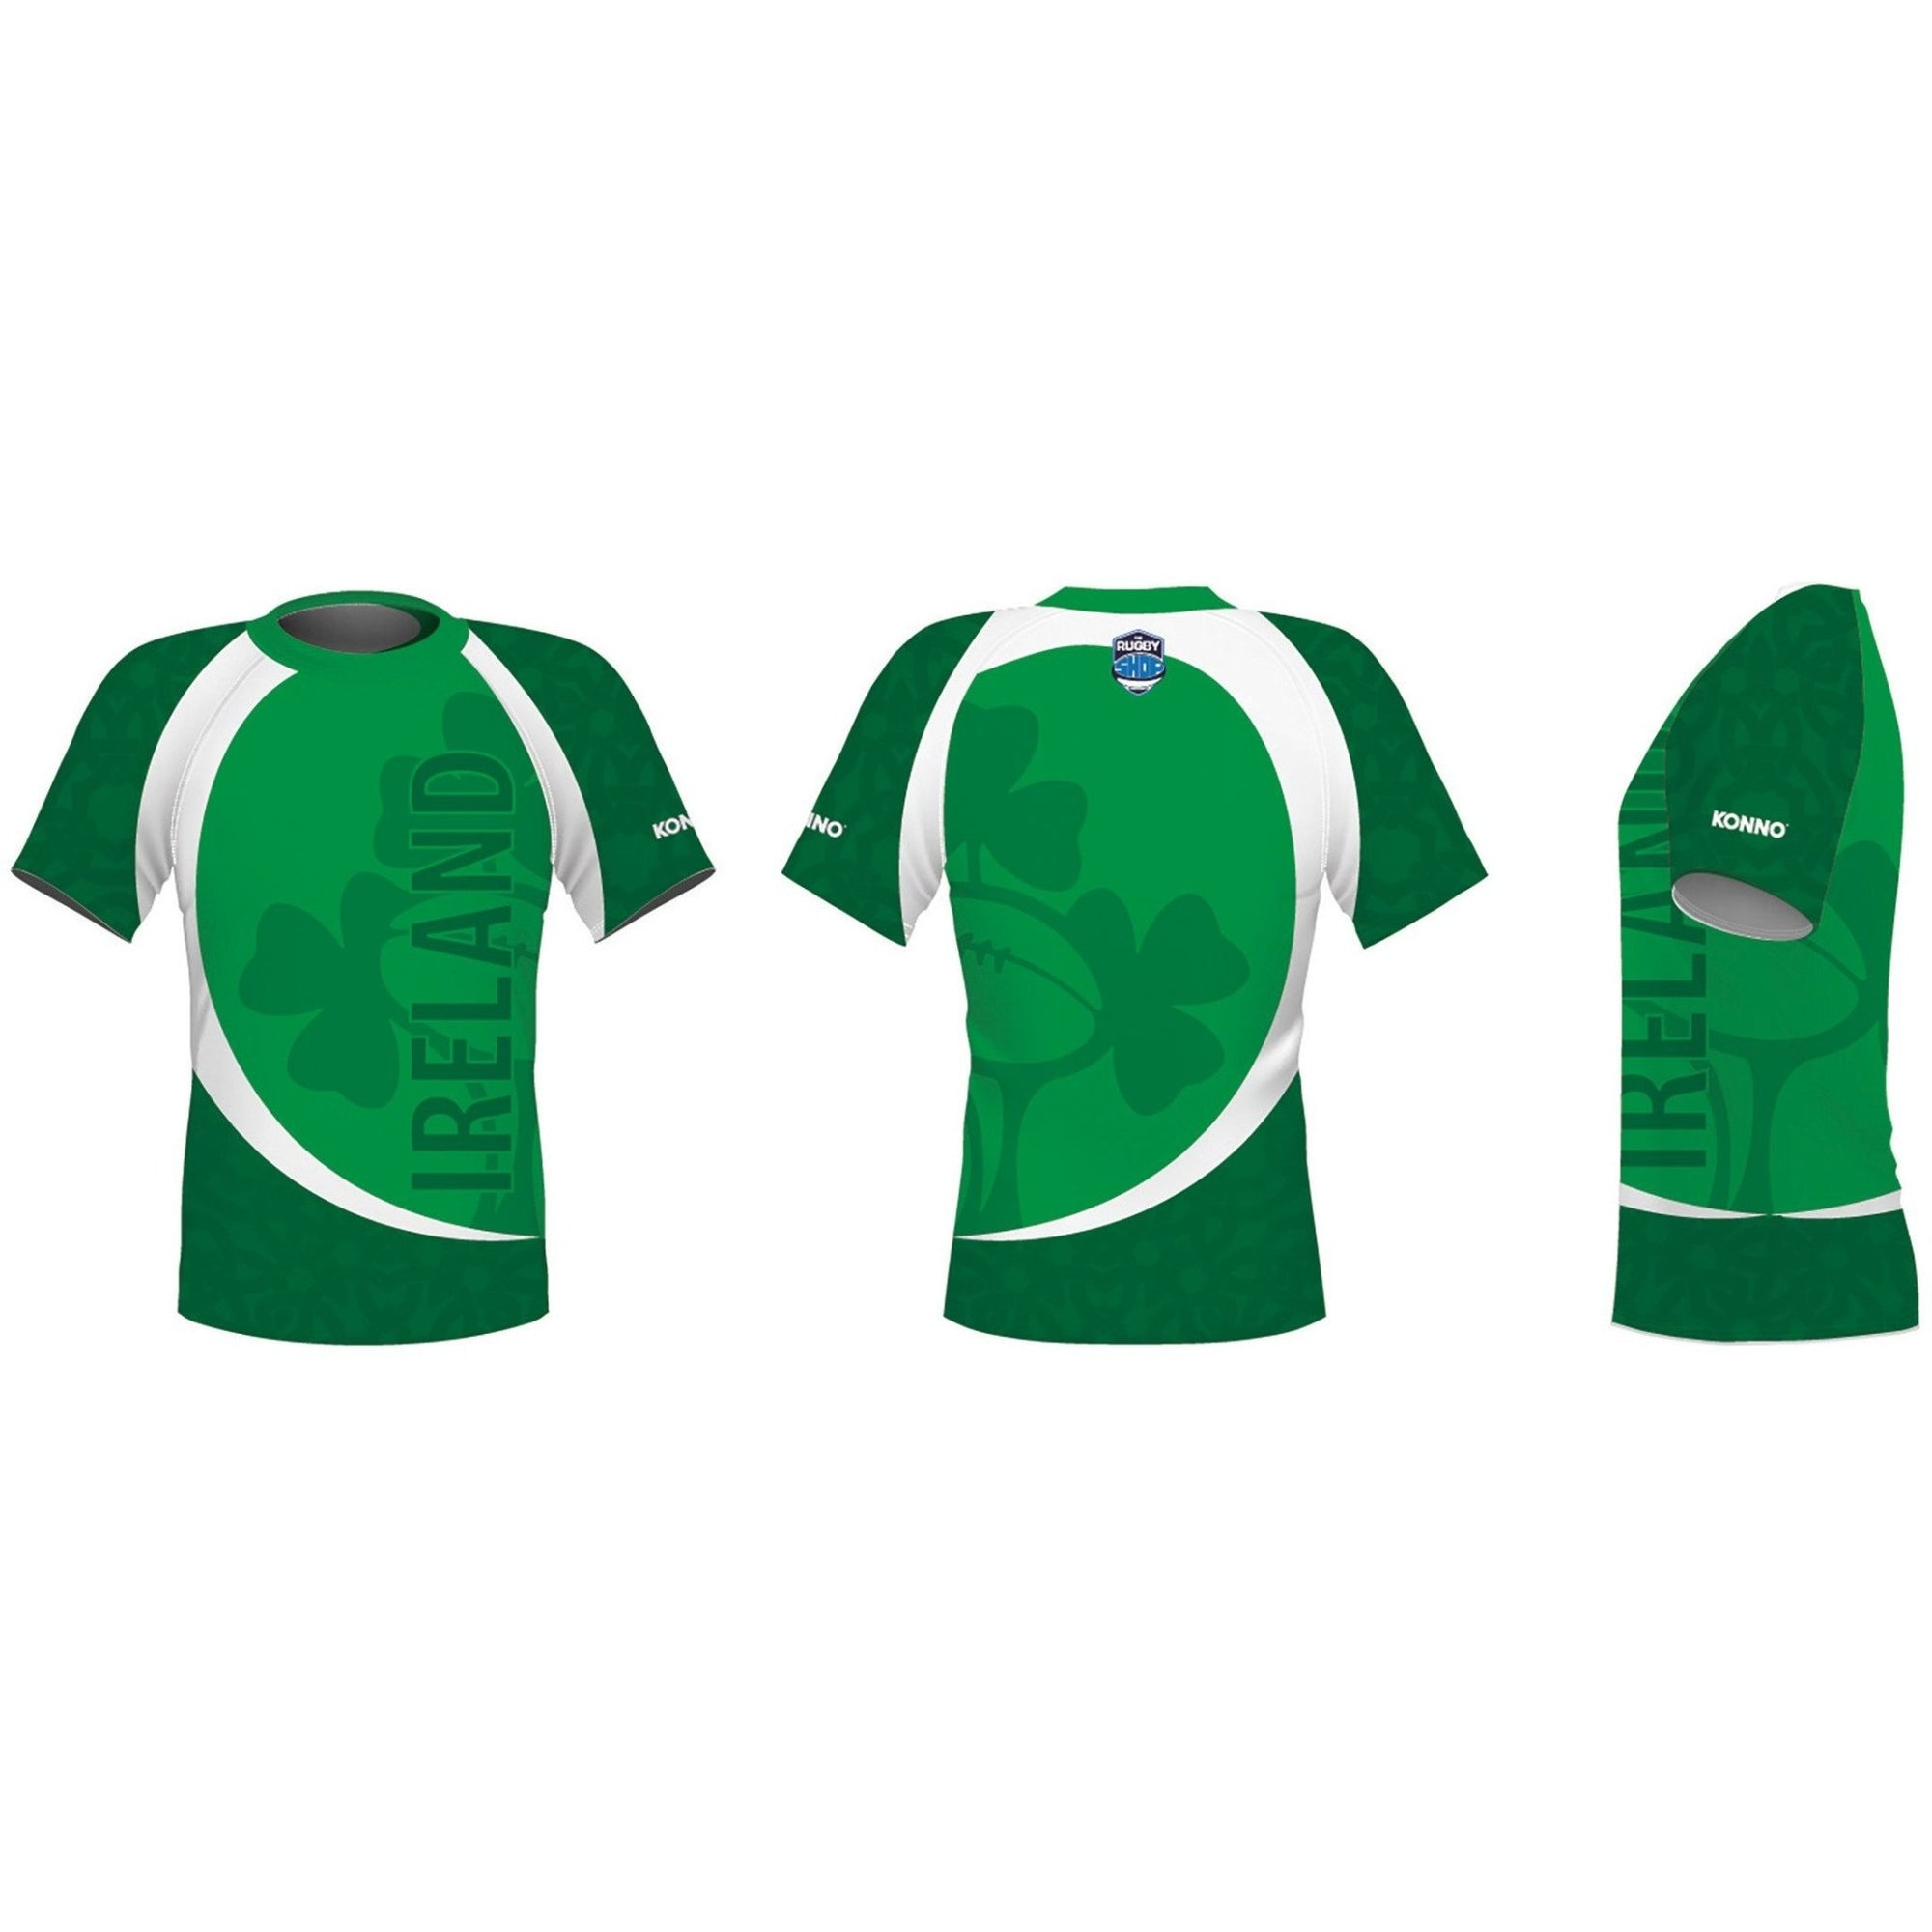 Konno International Supporter Tee - Ireland - www.therugbyshop.com